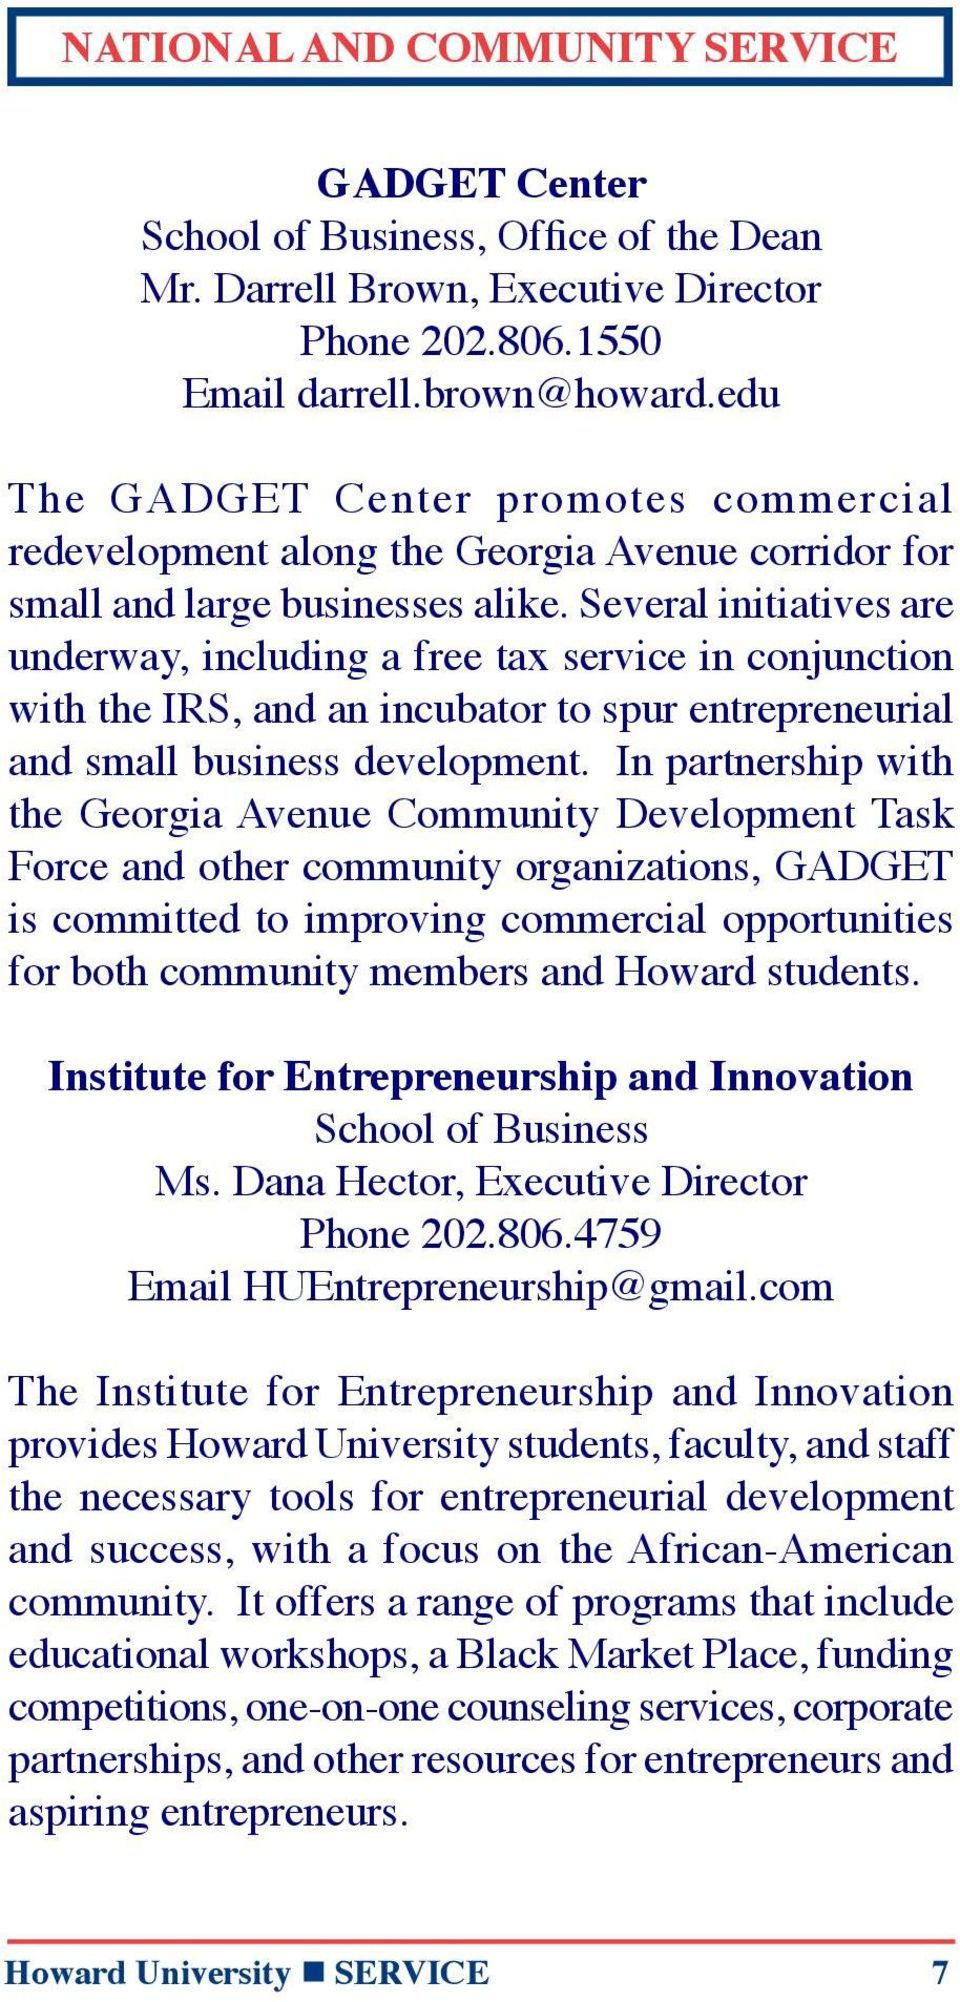 Several initiatives are underway, including a free tax service in conjunction with the IRS, and an incubator to spur entrepreneurial and small business development.